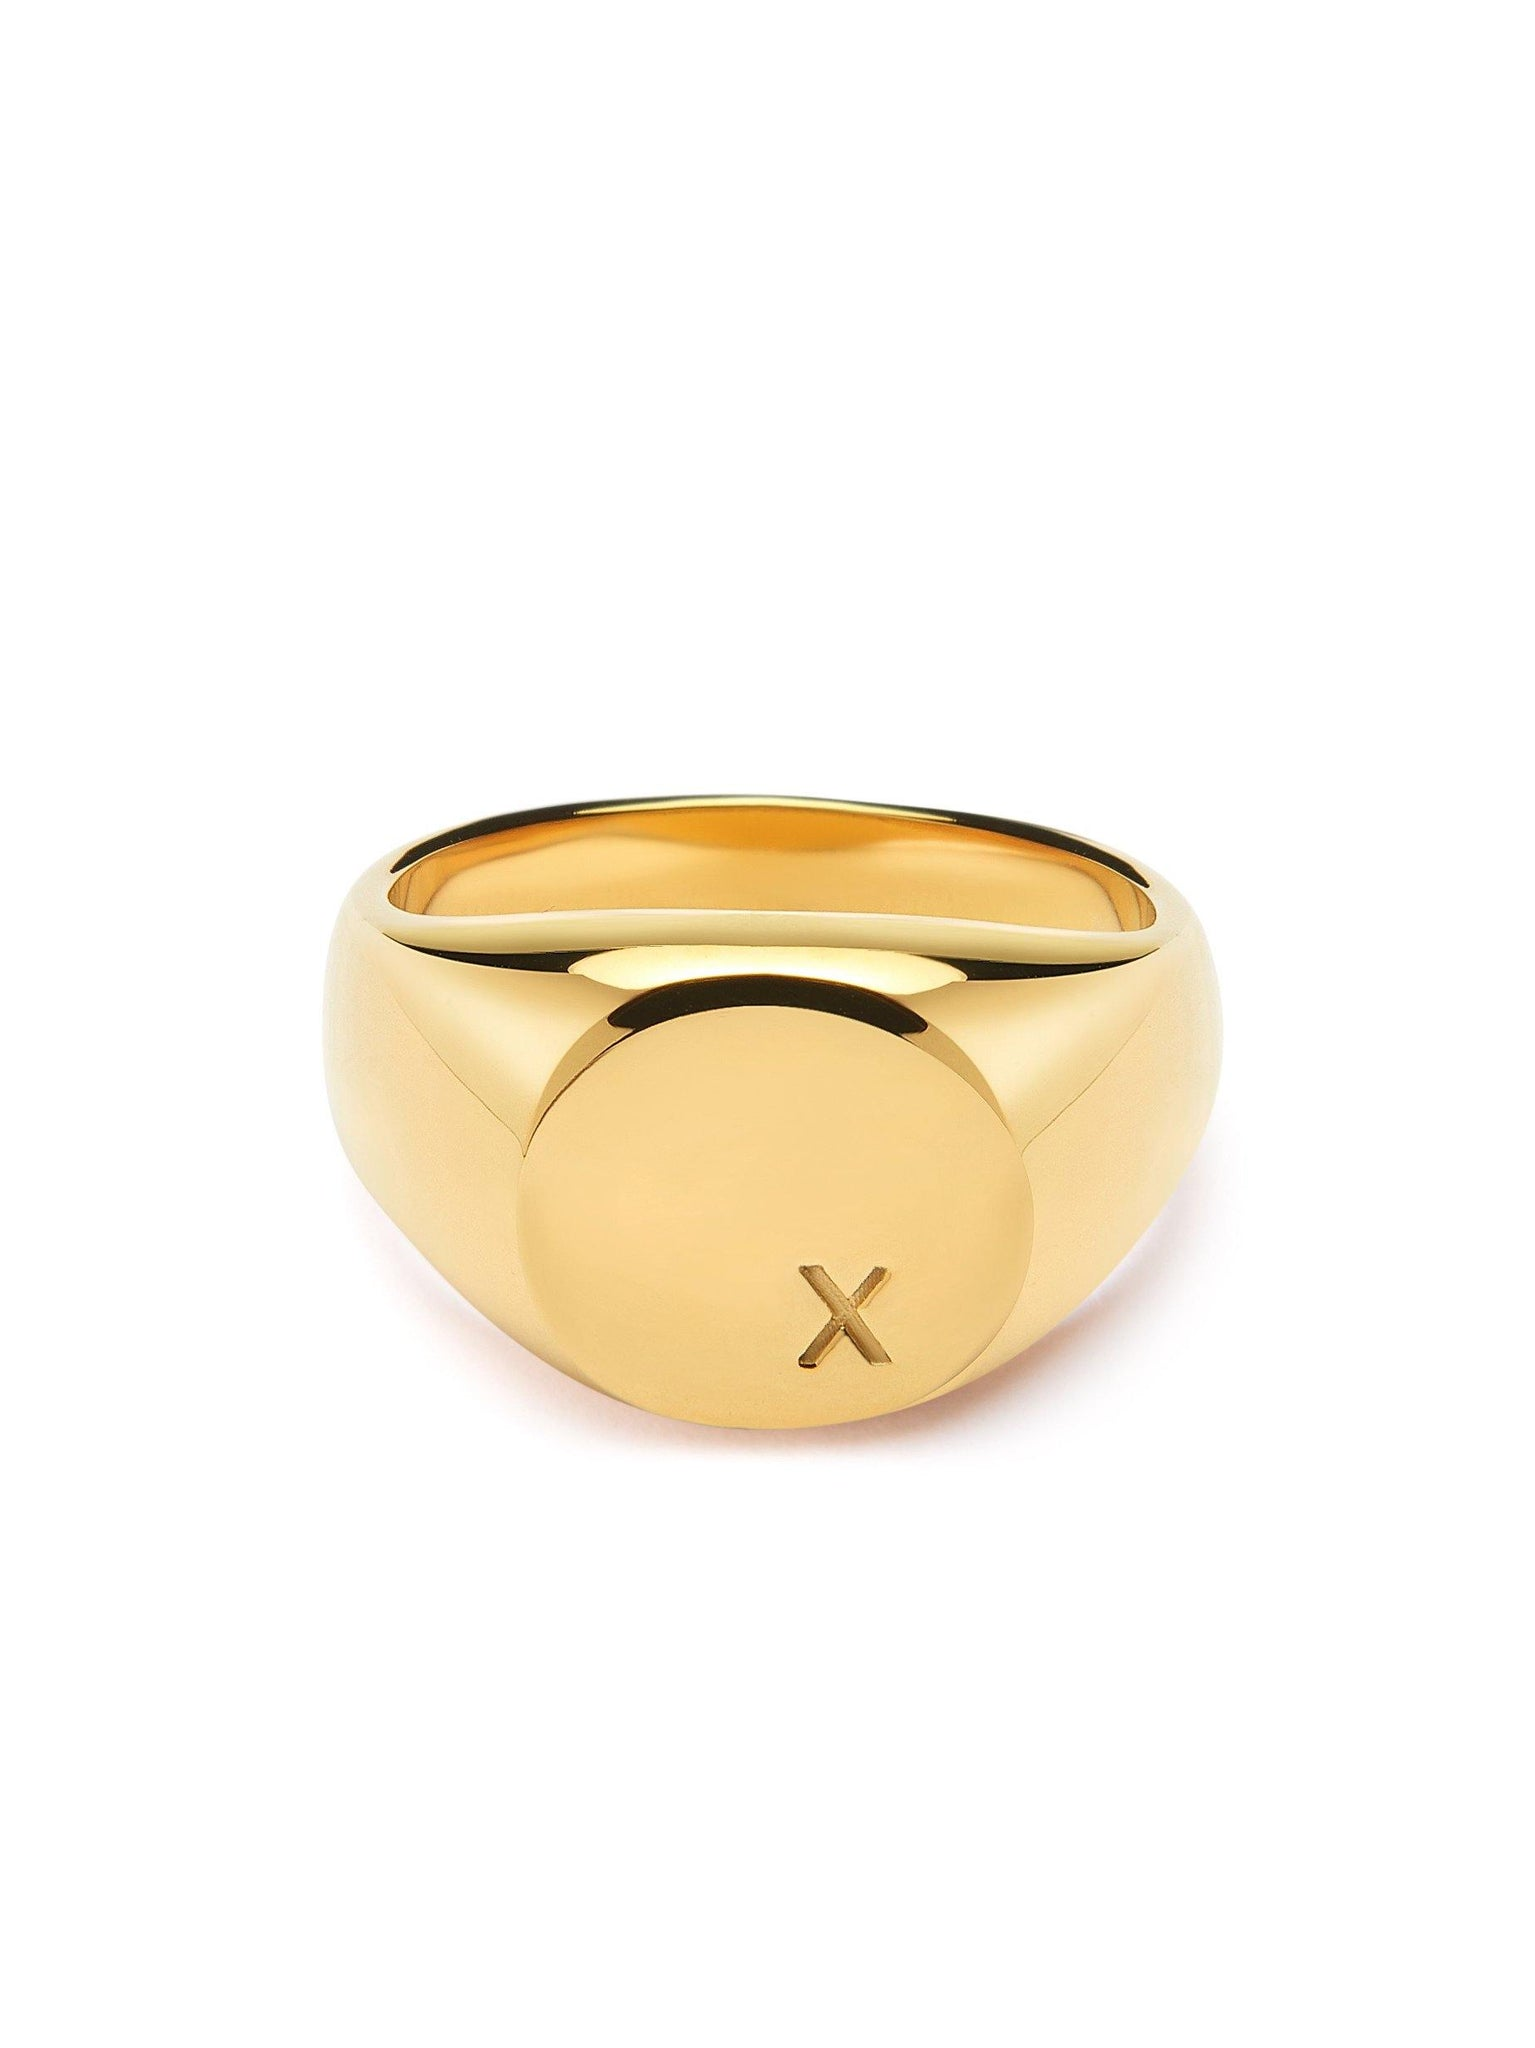 THE 10 YEAR ANNIVERSARY COLLECTION - Women's Limited Edition X Engraved Ring